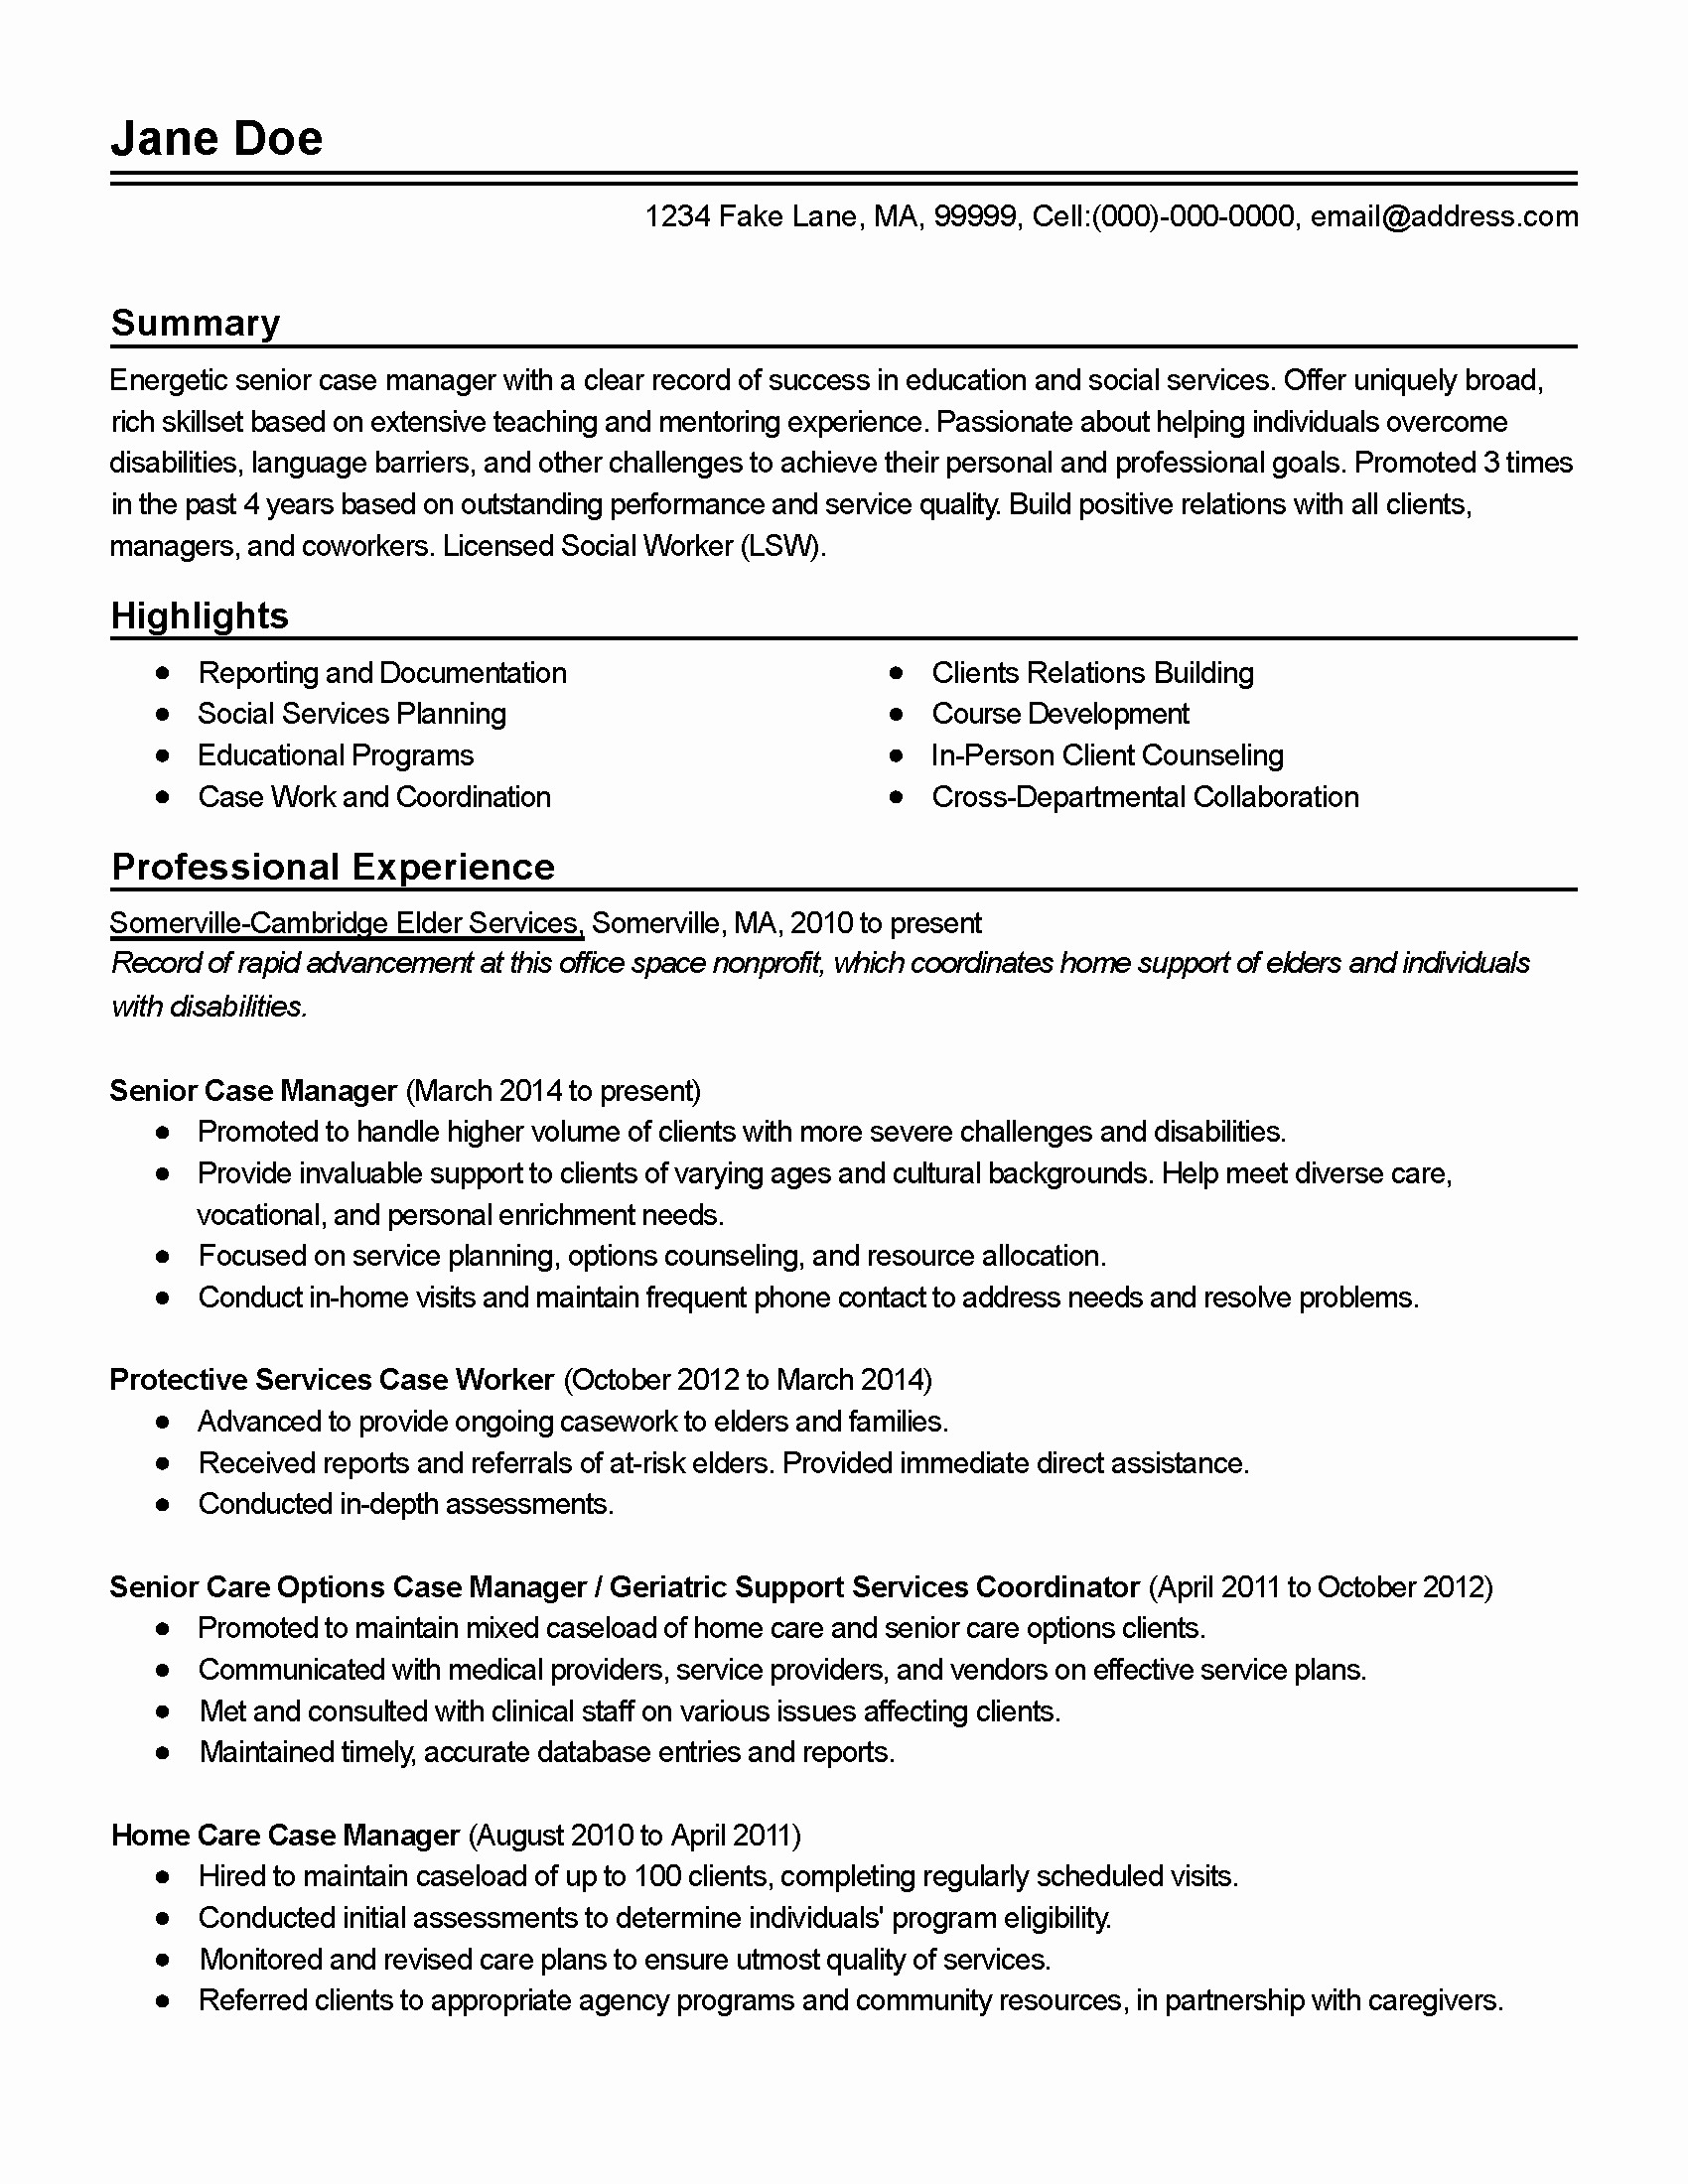 Direct Care Professional Job Duties - 25 Lovely Dsp Job Description for Resume